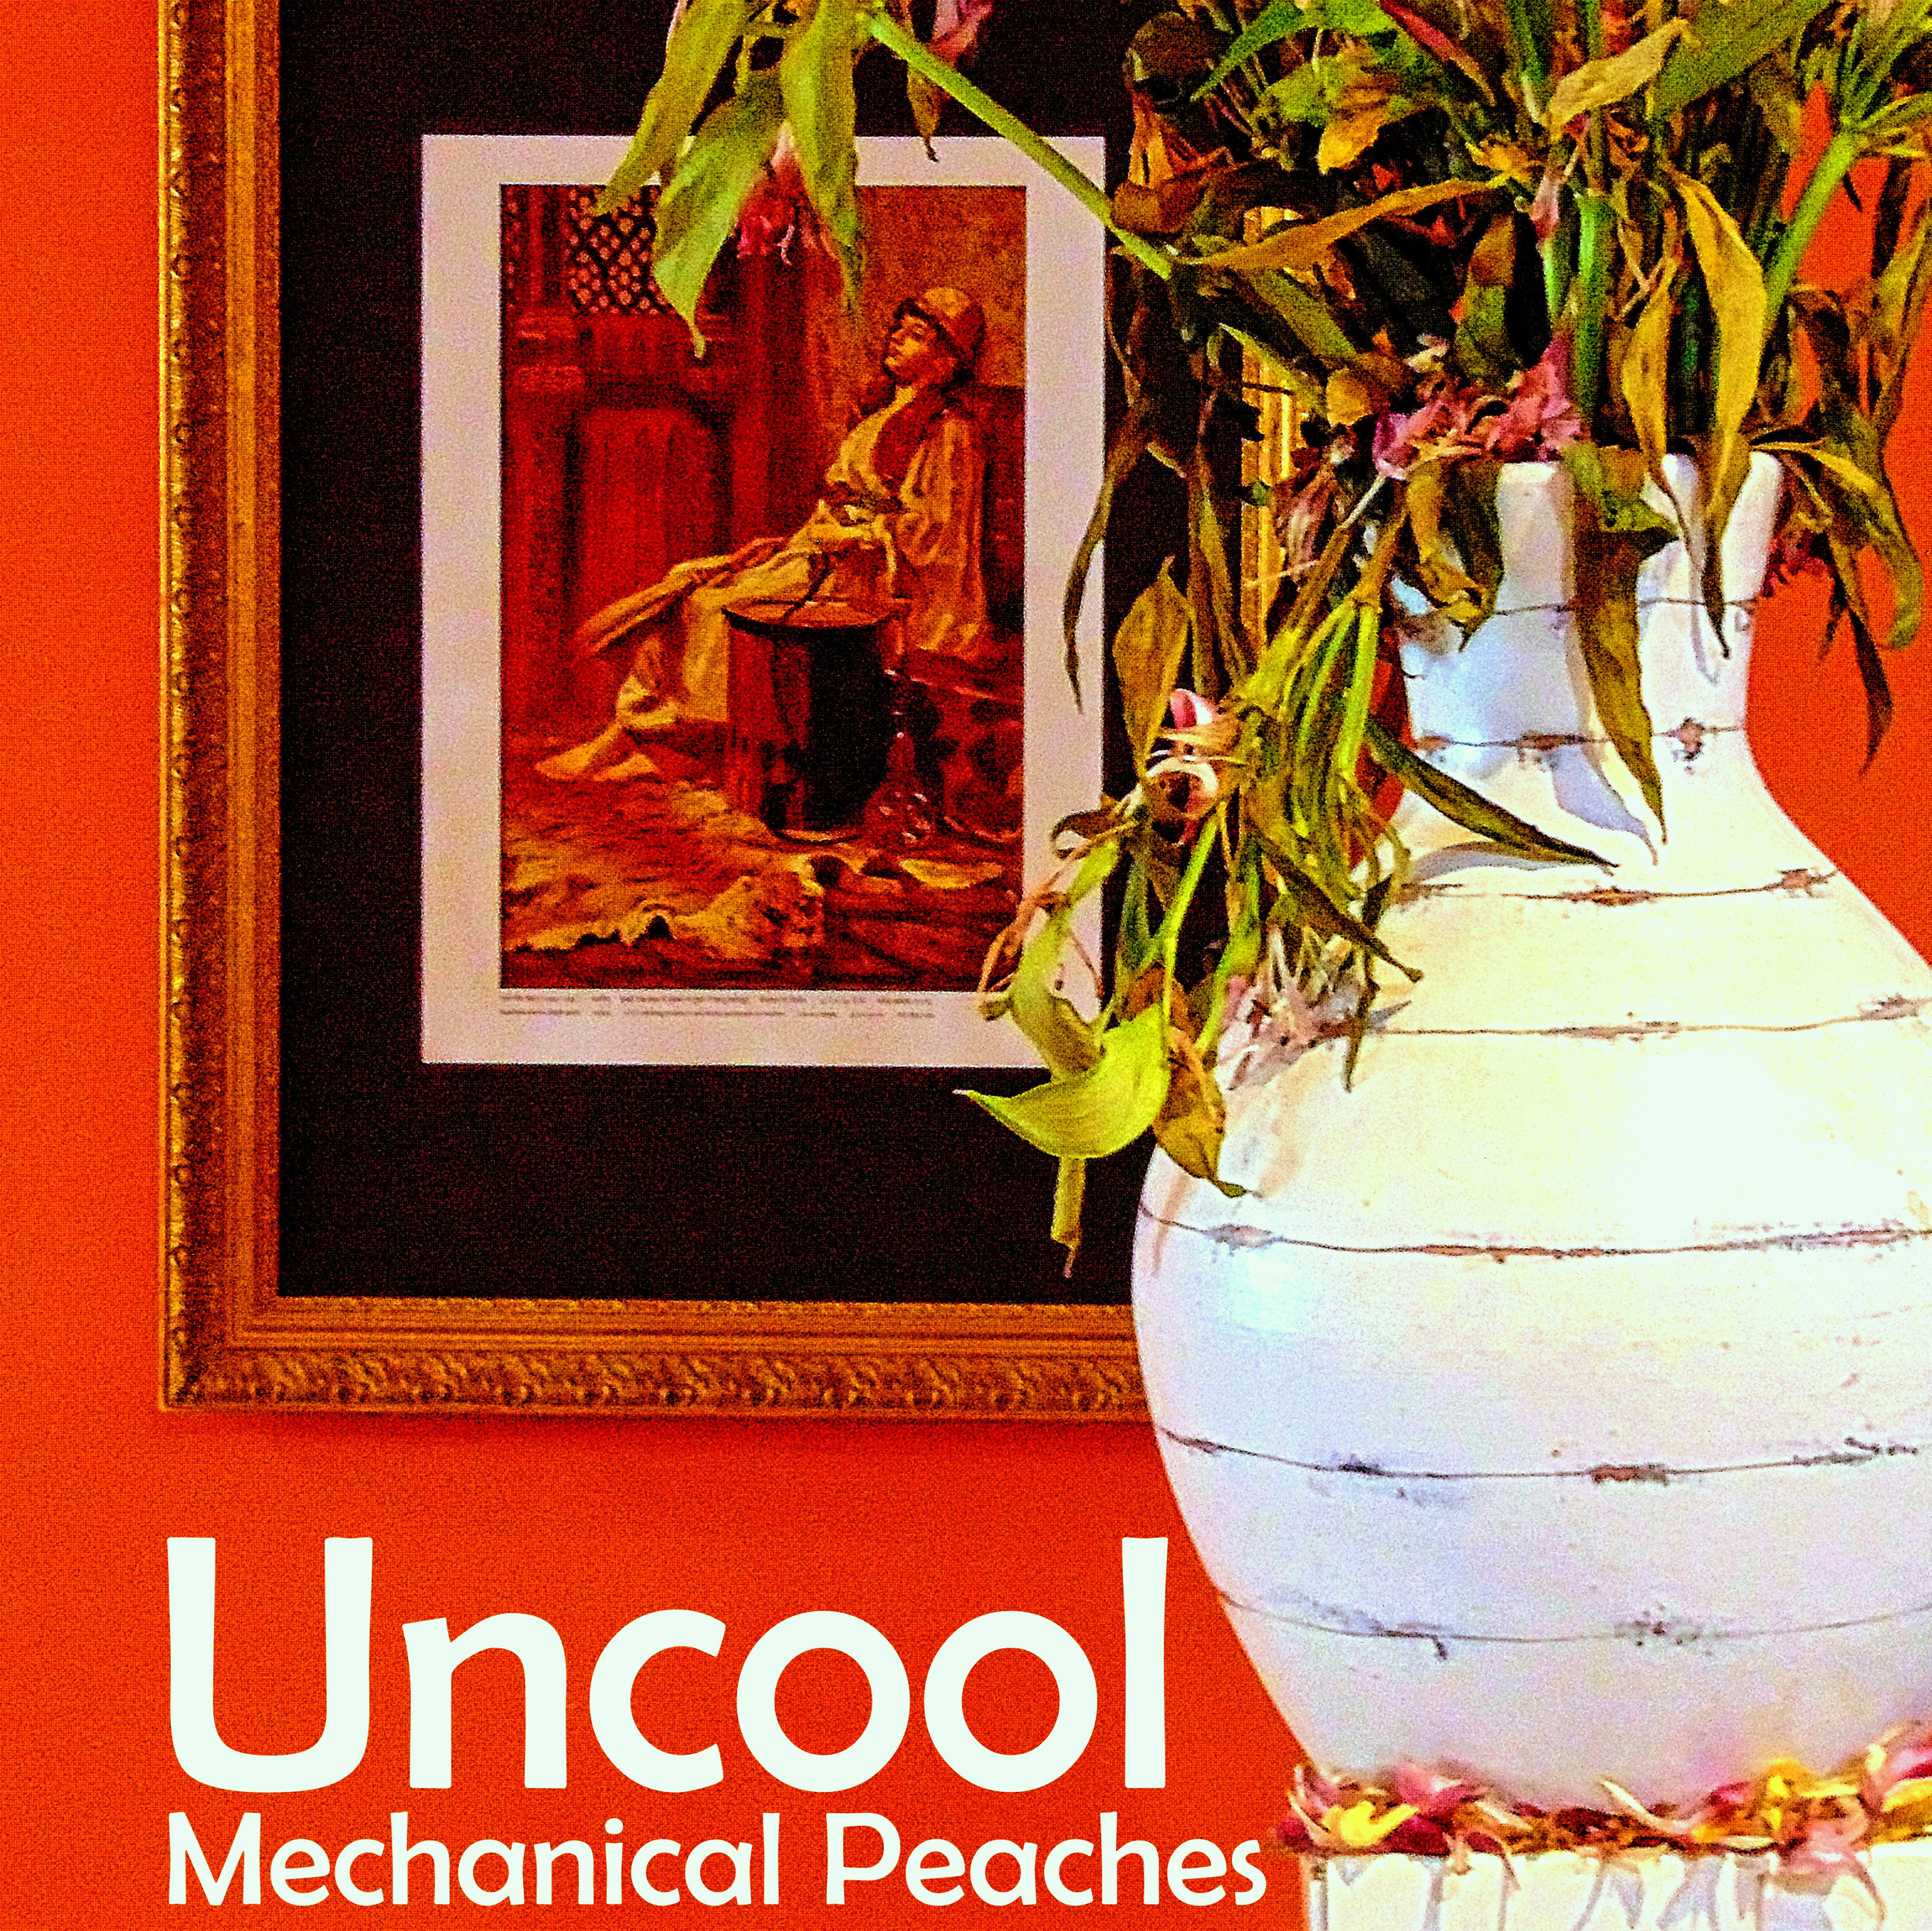 1-Uncool_Cover_4.jpg